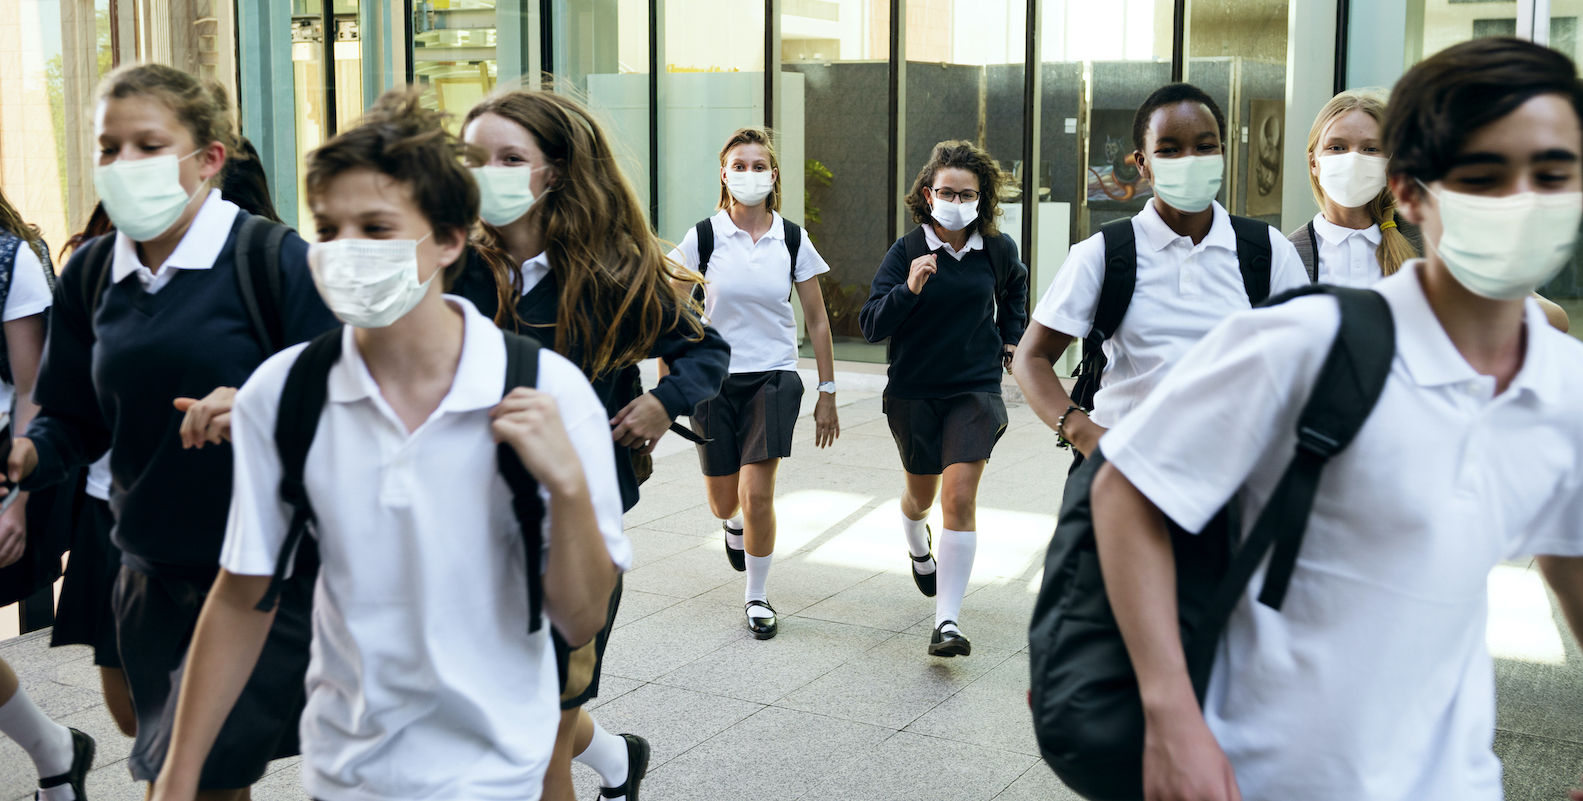 Install mechanical ventilation in school classrooms, unions say